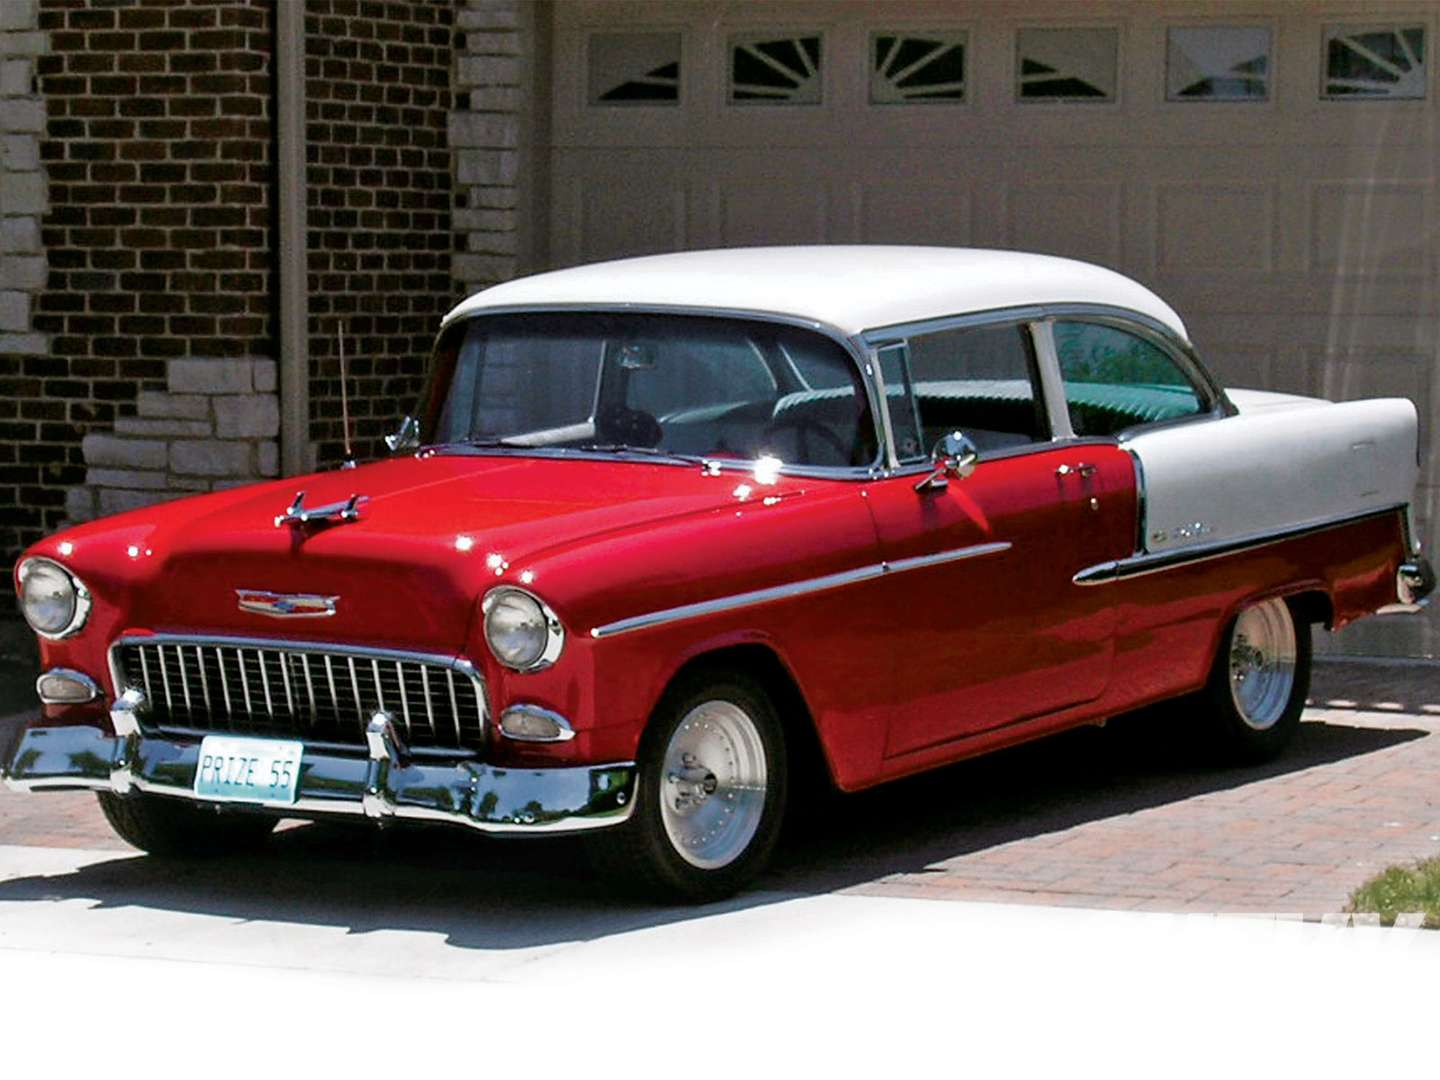 Chevrolet Bel Air #8536593